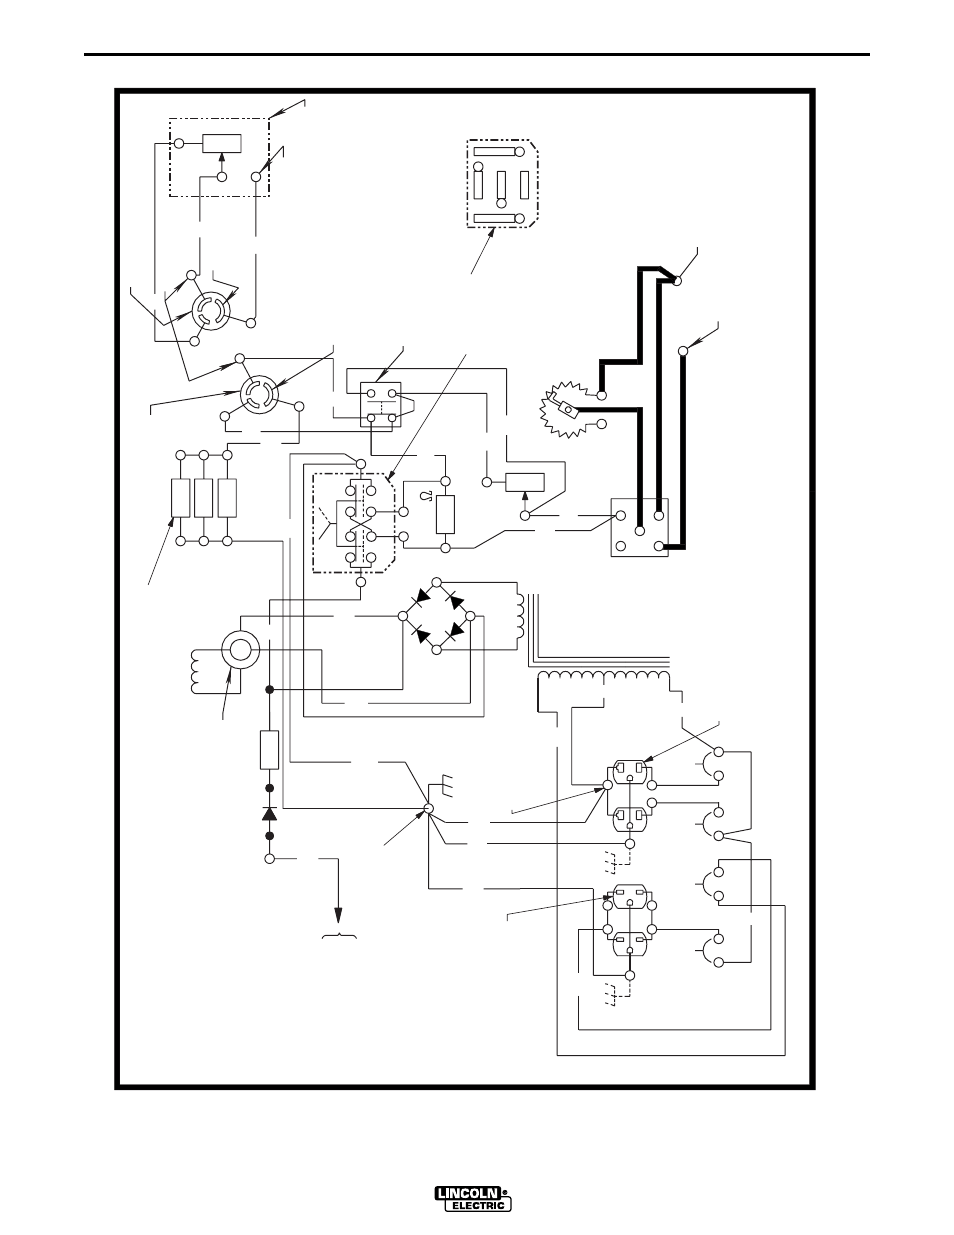 medium resolution of wiring diagrams sae400 weld n air control wiring diagram sae 400 65 lincoln wiring lincoln wiring diagrams